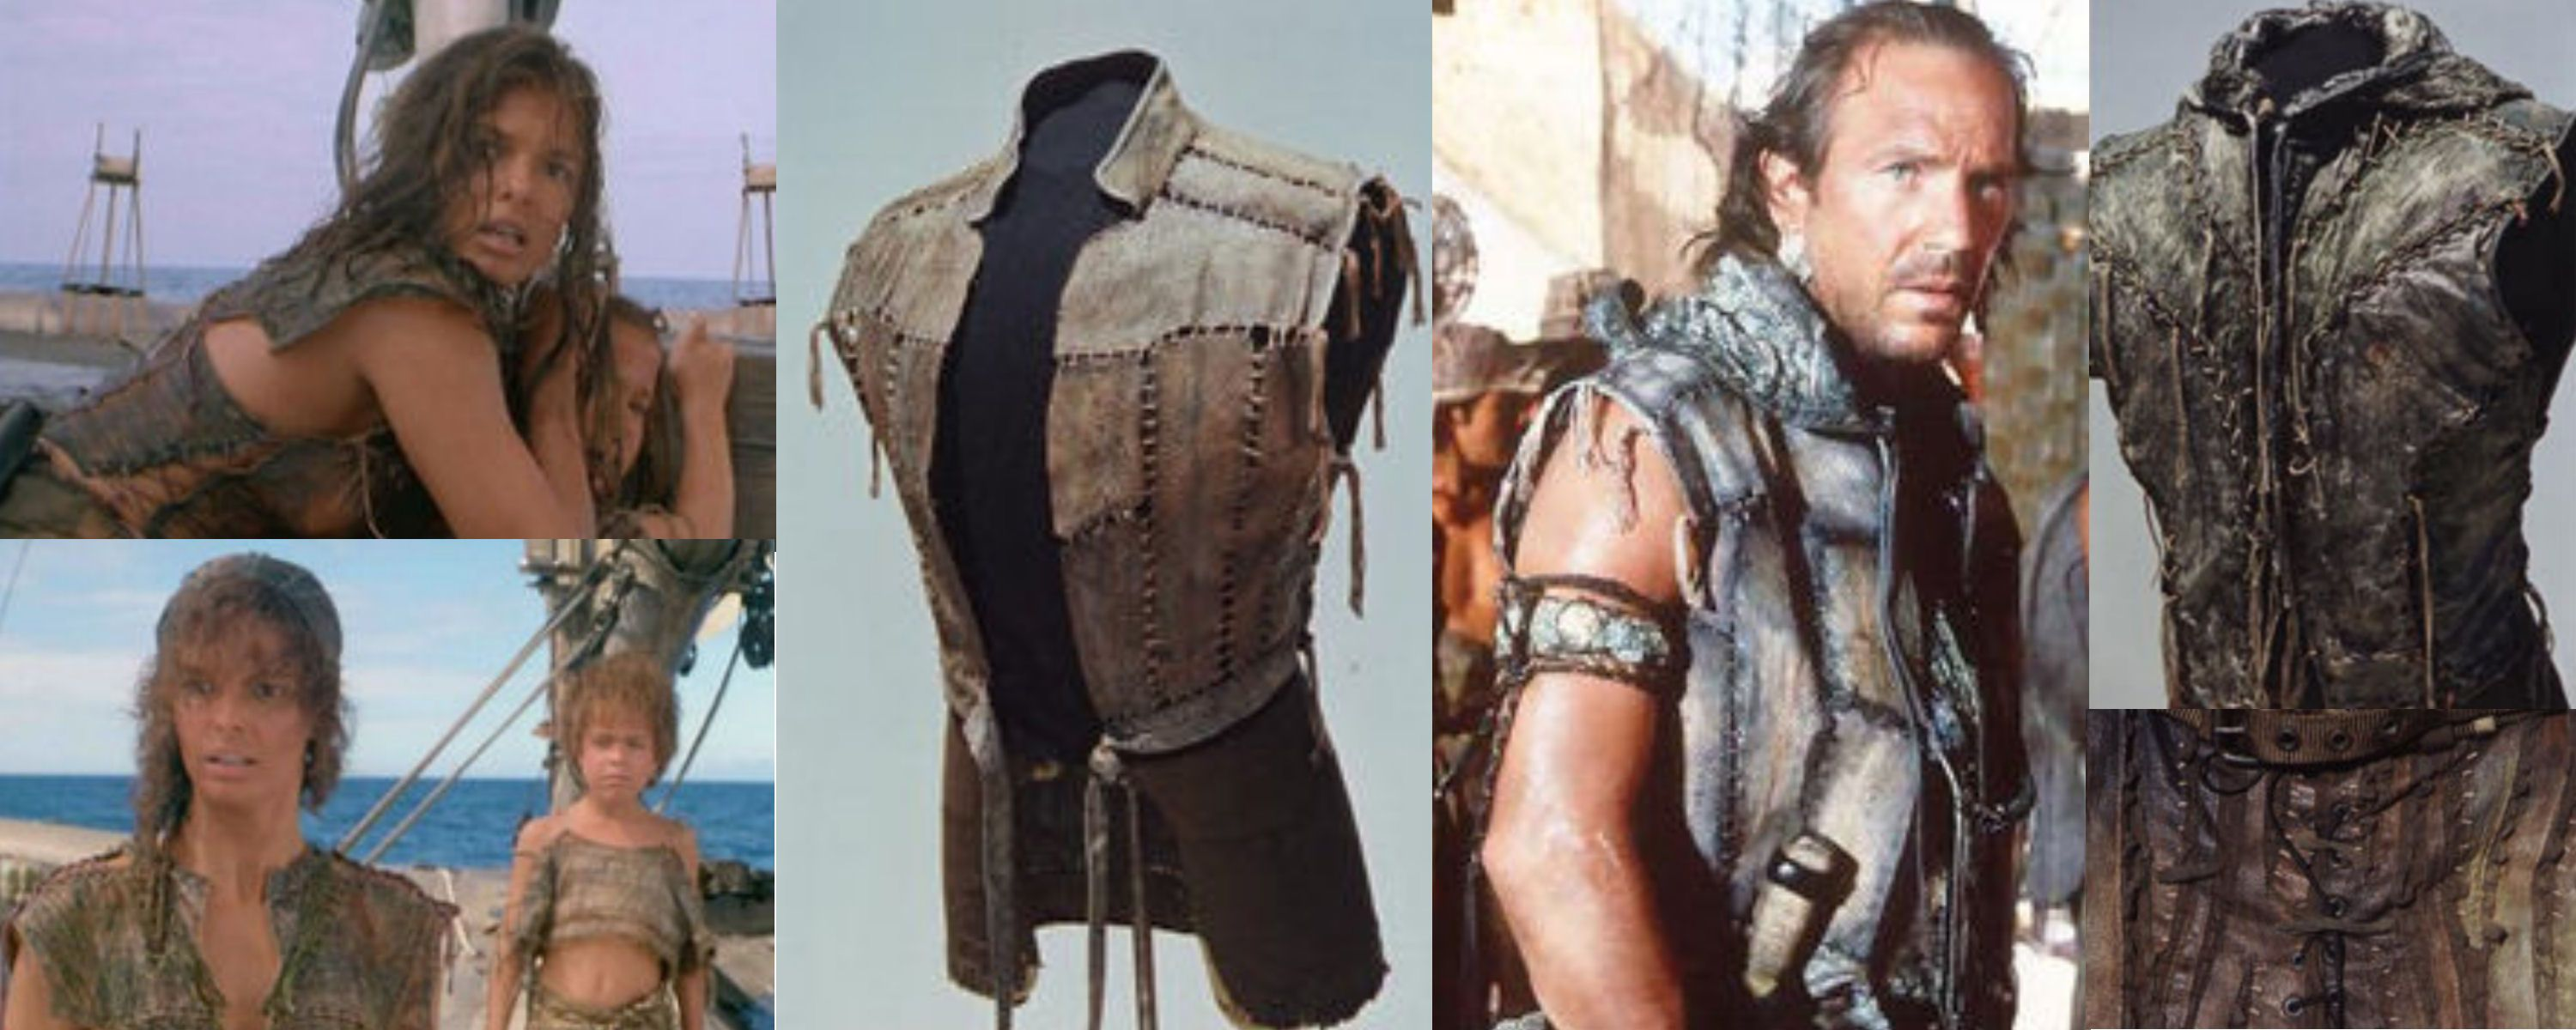 The costumes worn in Kevin Costner's Waterwold film Design